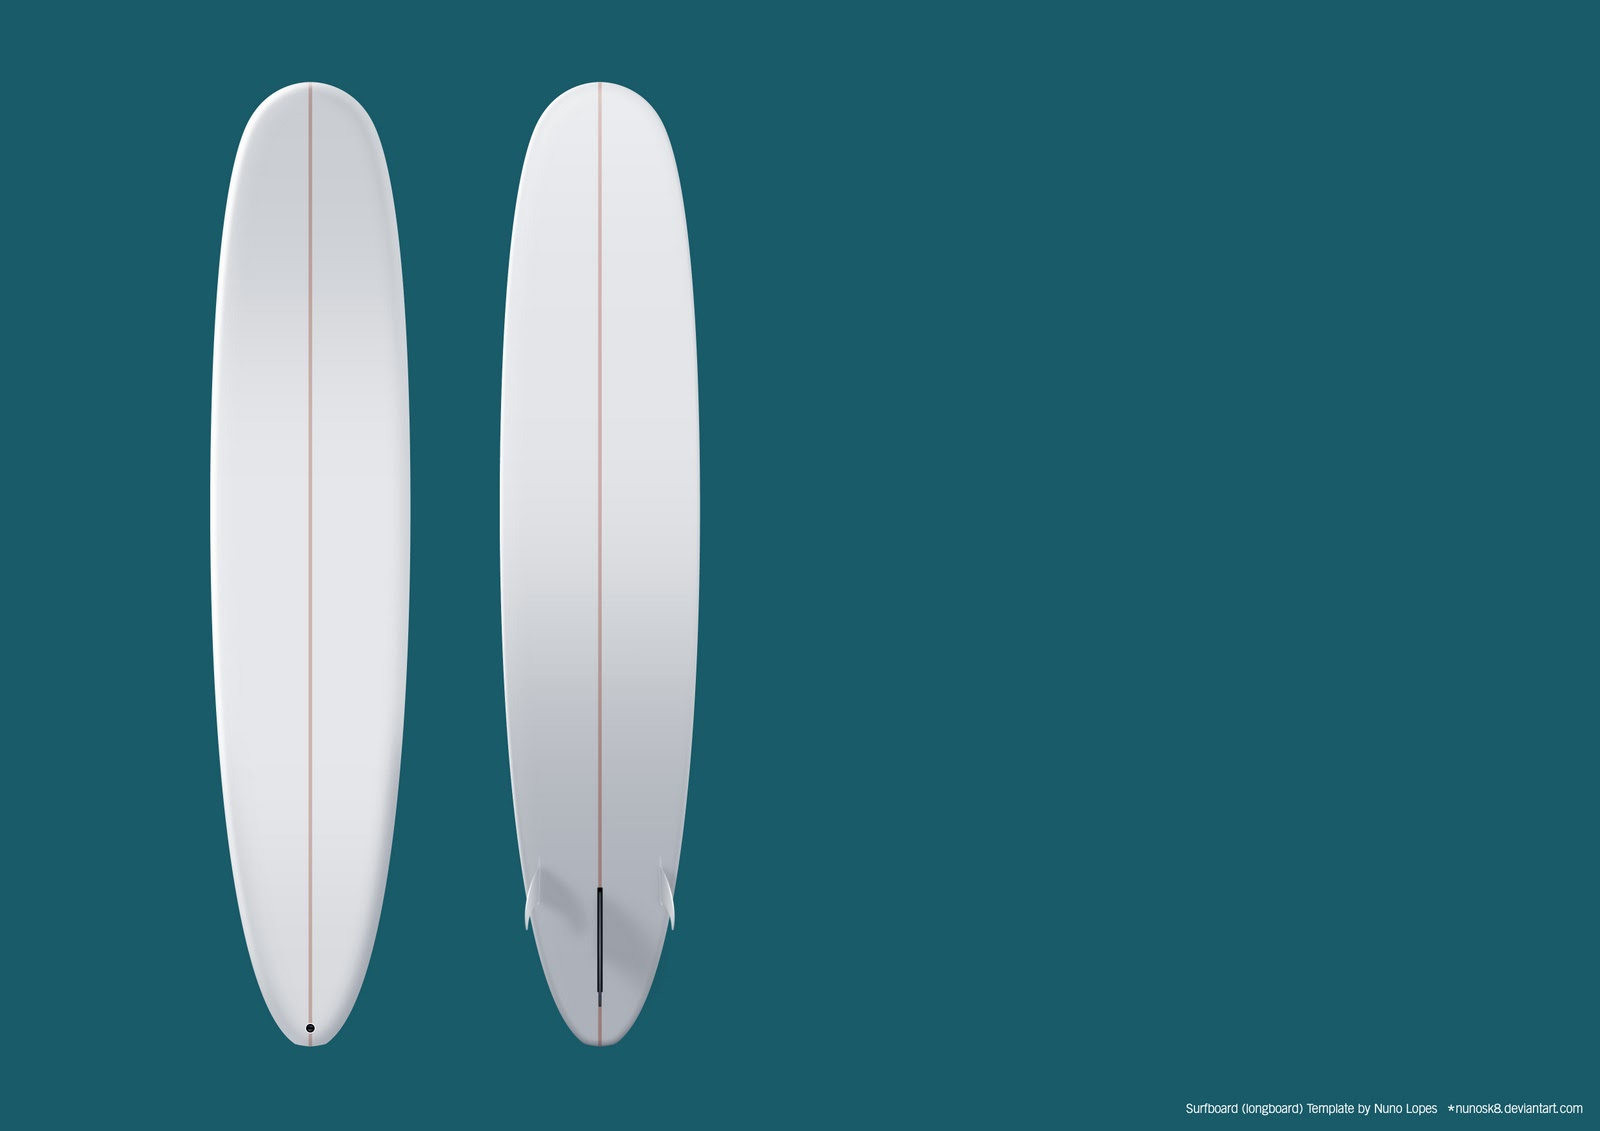 Psd Files Free Download: surfboards,Surfboard Templates,surfboard design